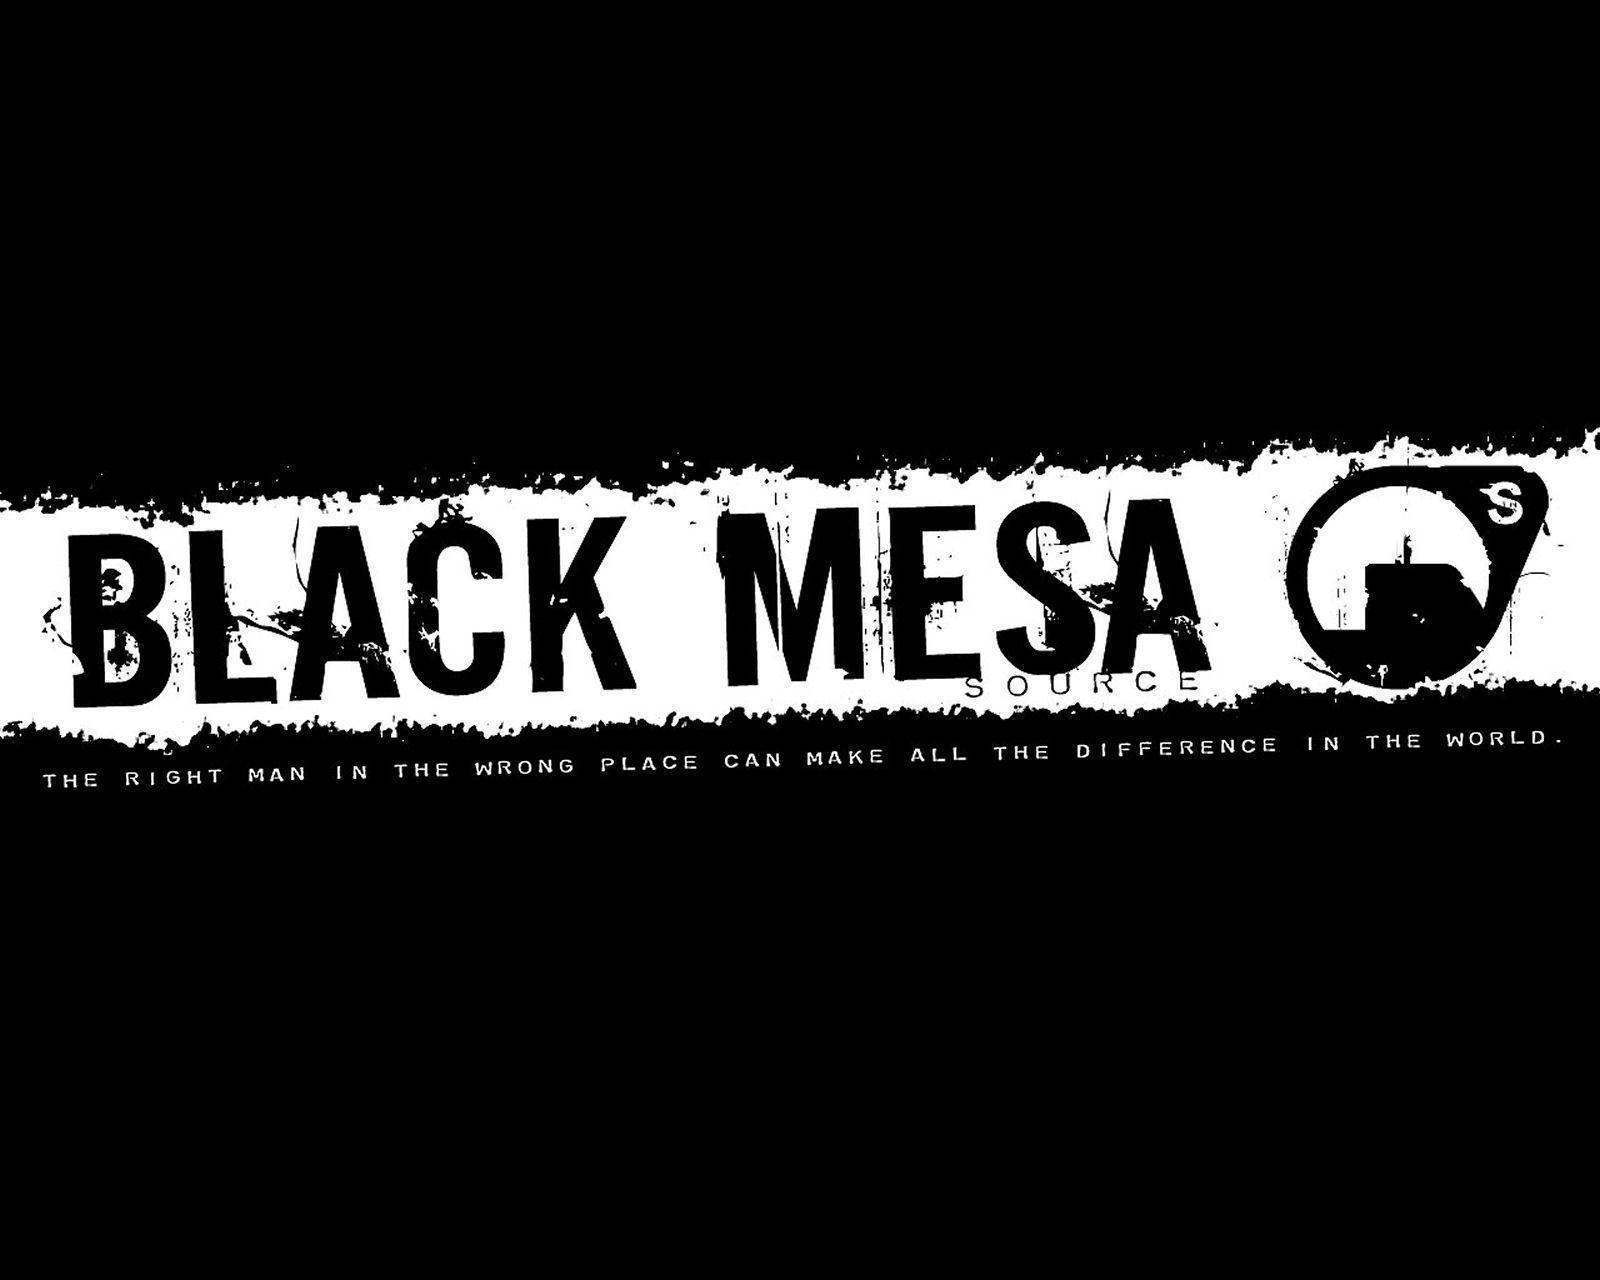 Black Mesa Source Wallpaper - Viewing Gallery